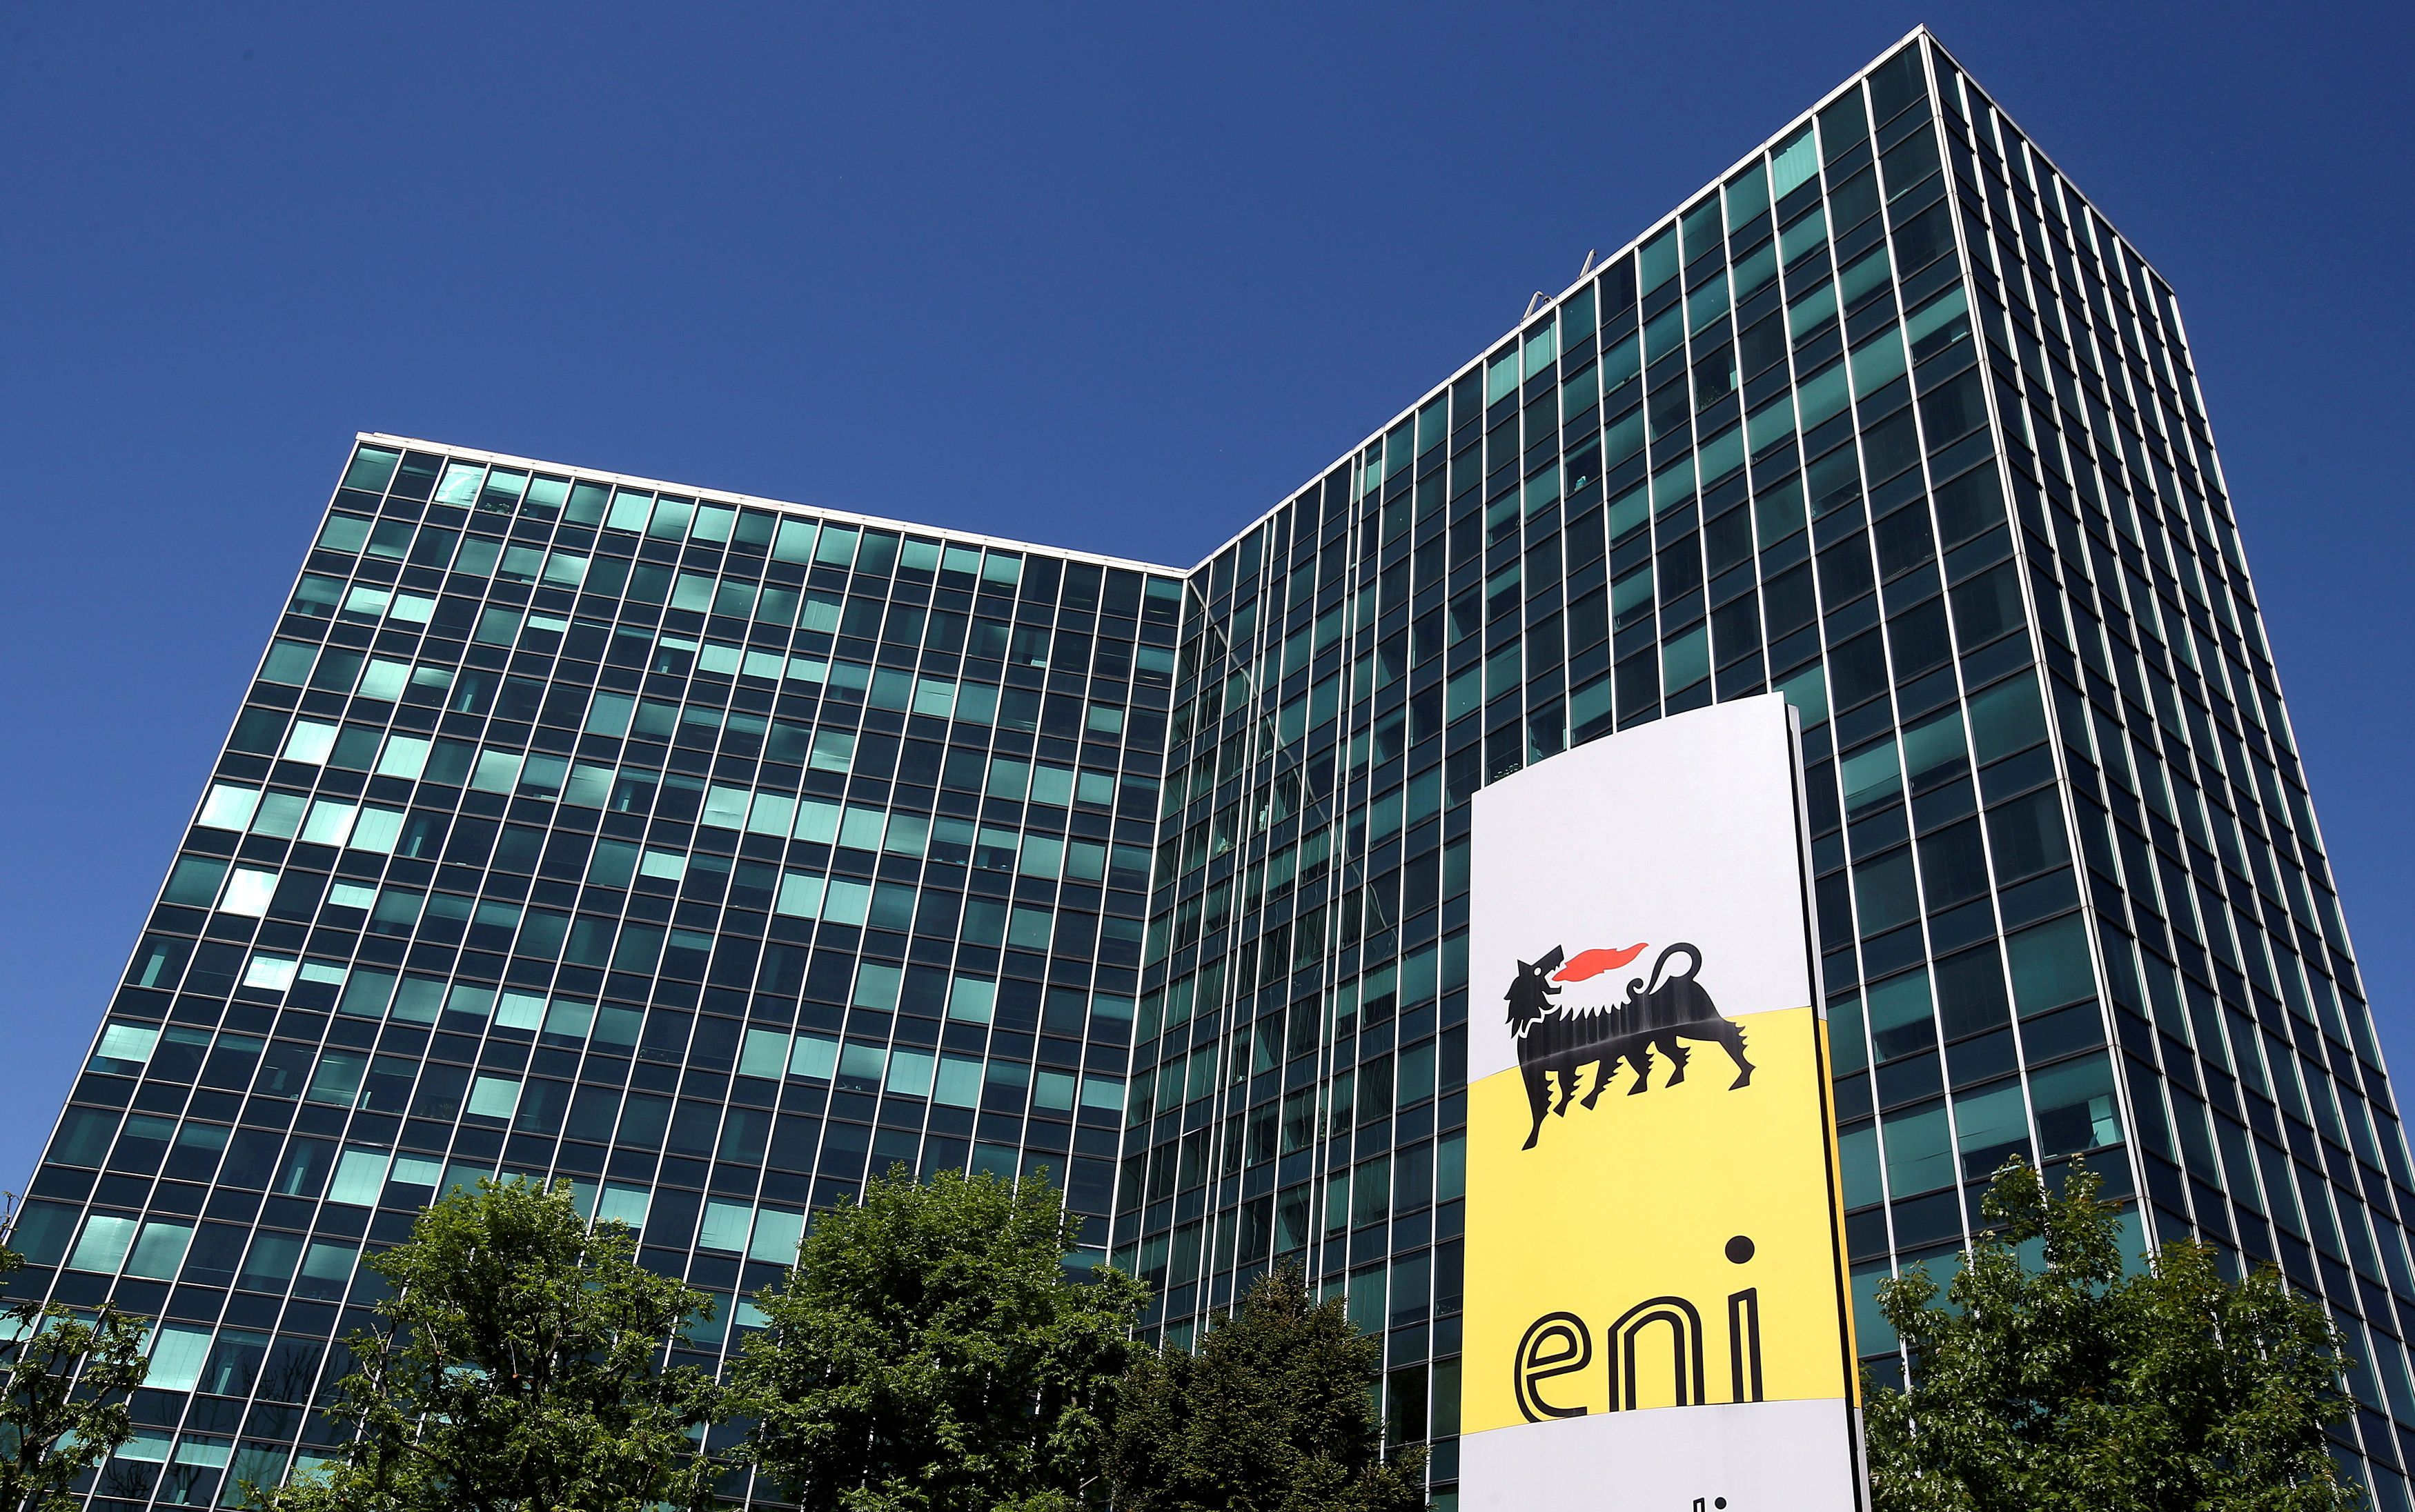 Eni's logo is seen in front of its headquarters in San Donato Milanese, near Milan, Italy, April 27, 2016.  REUTERS/Stefano Rellandini